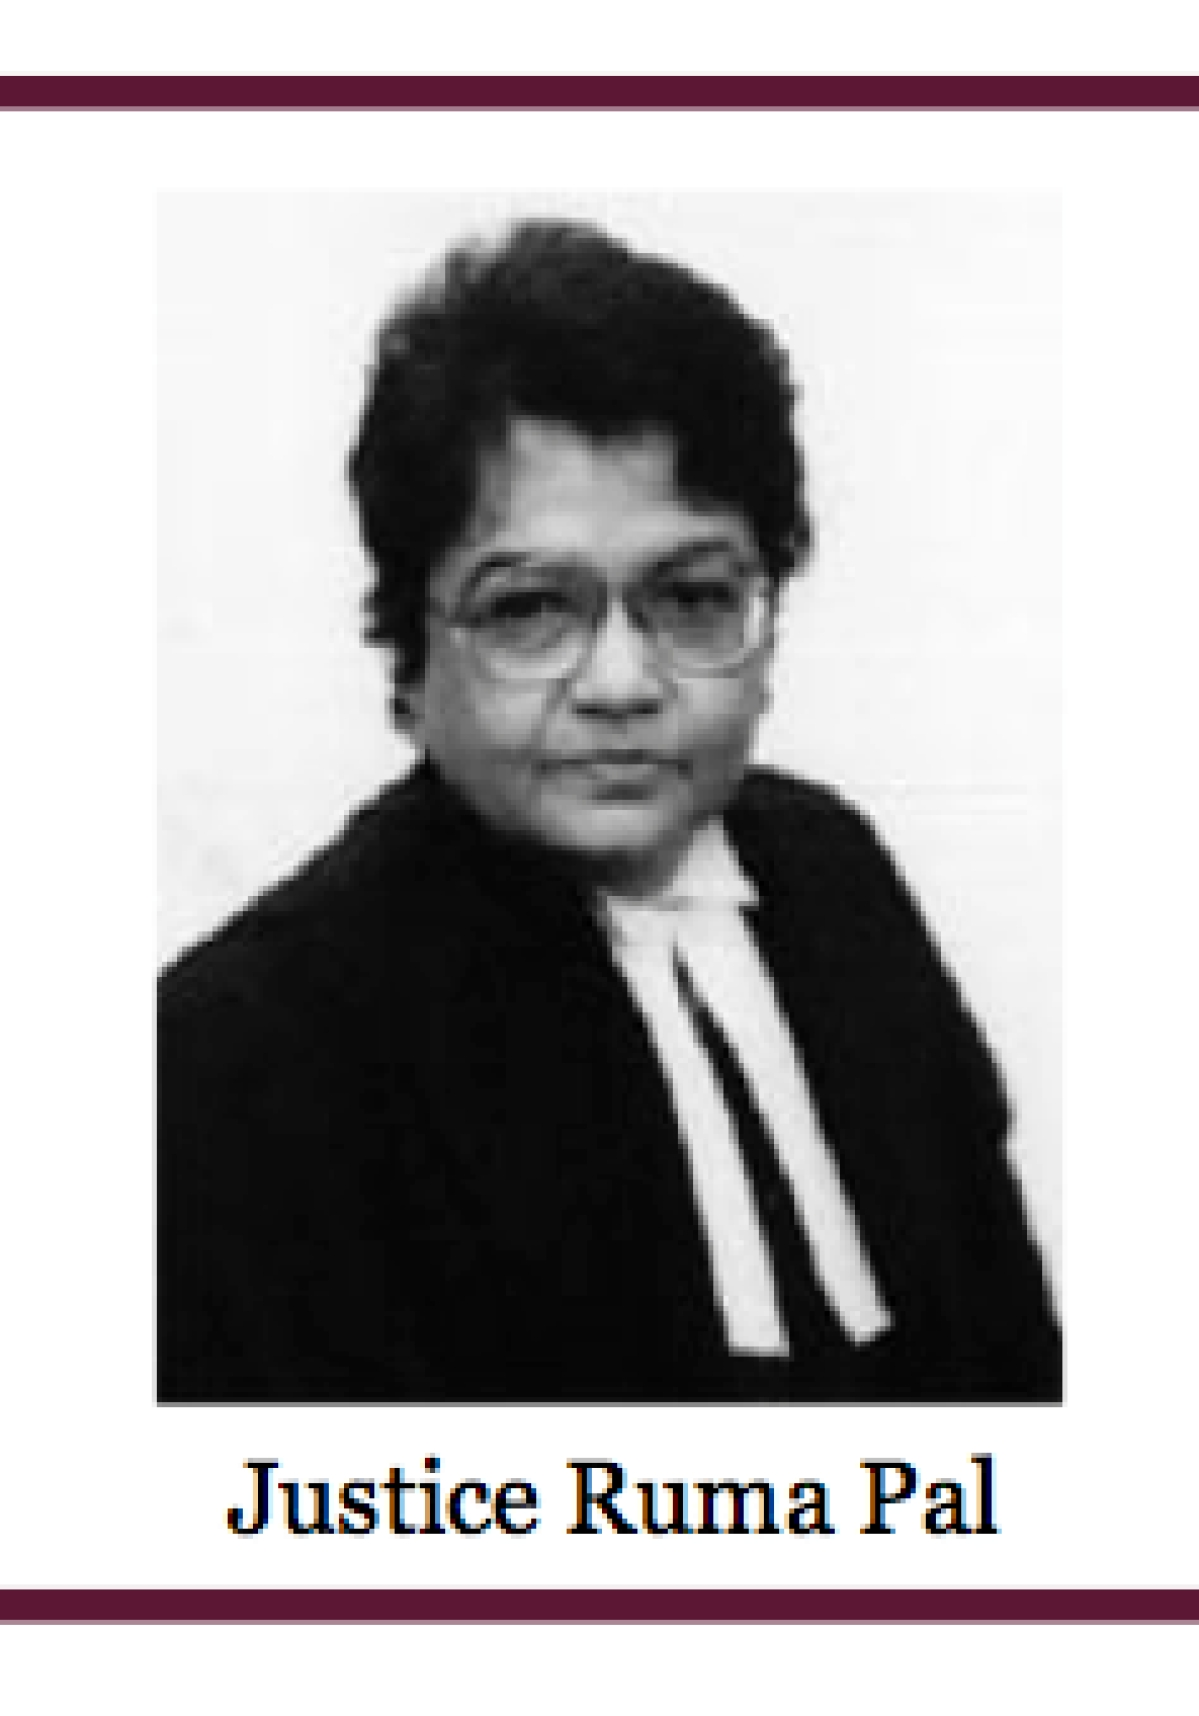 The Supreme Court of India has been functioning with one woman judge for the last two years